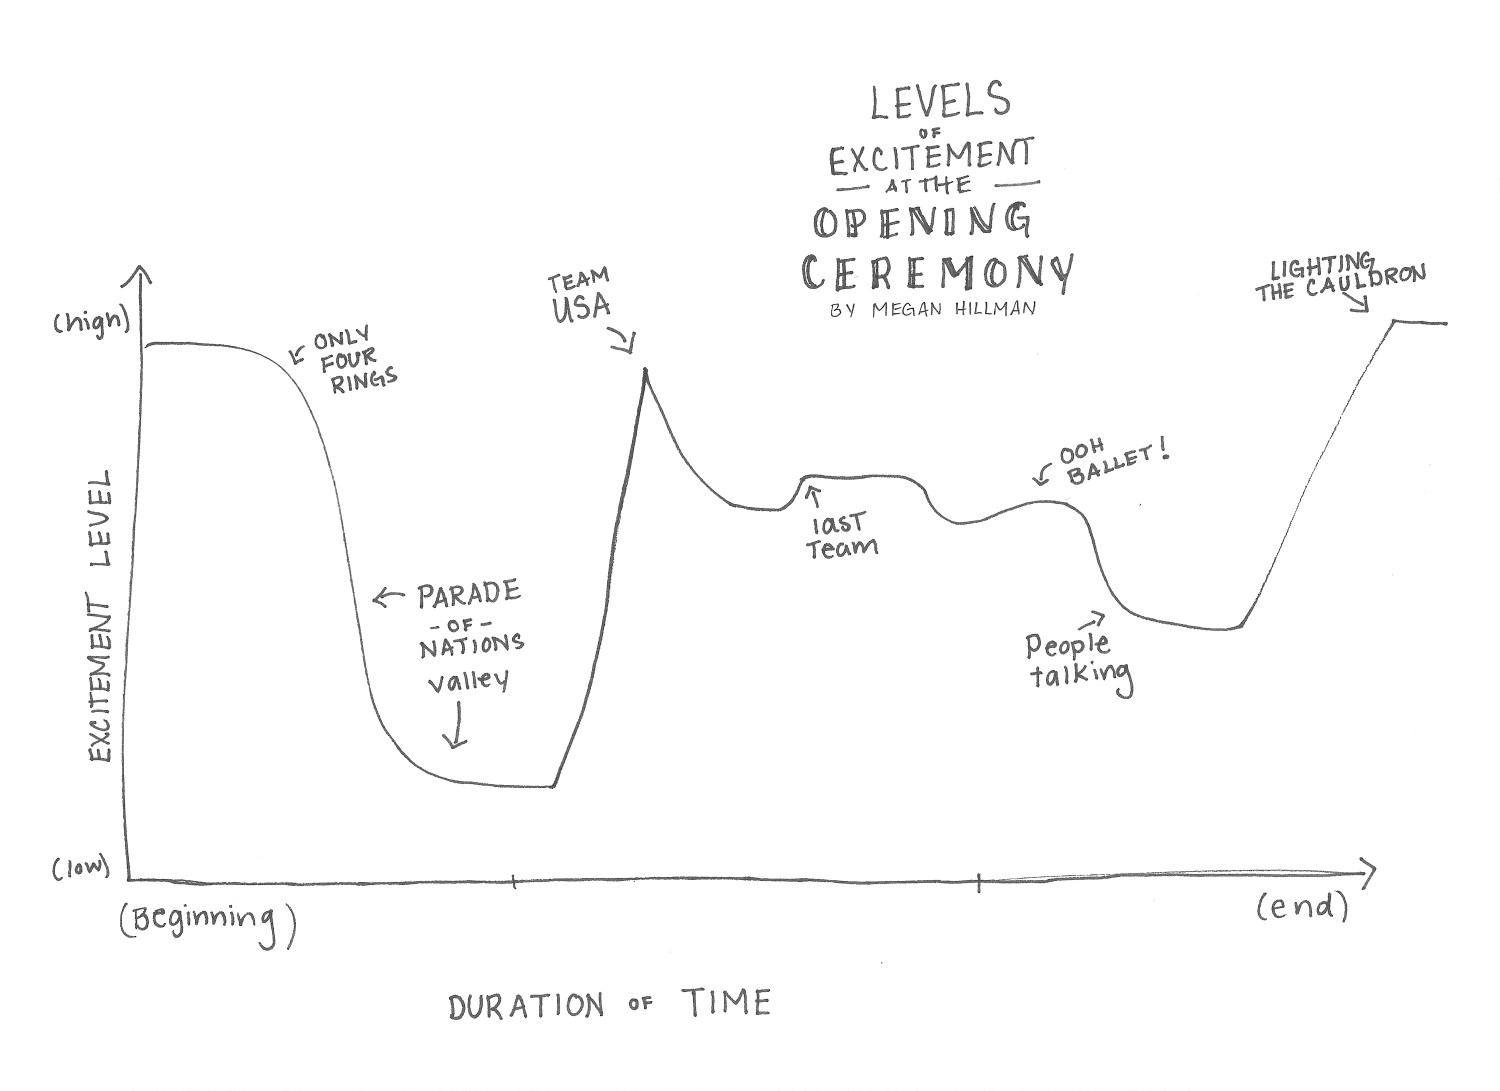 Levels of Excitement at the Opening Ceremony Infographic